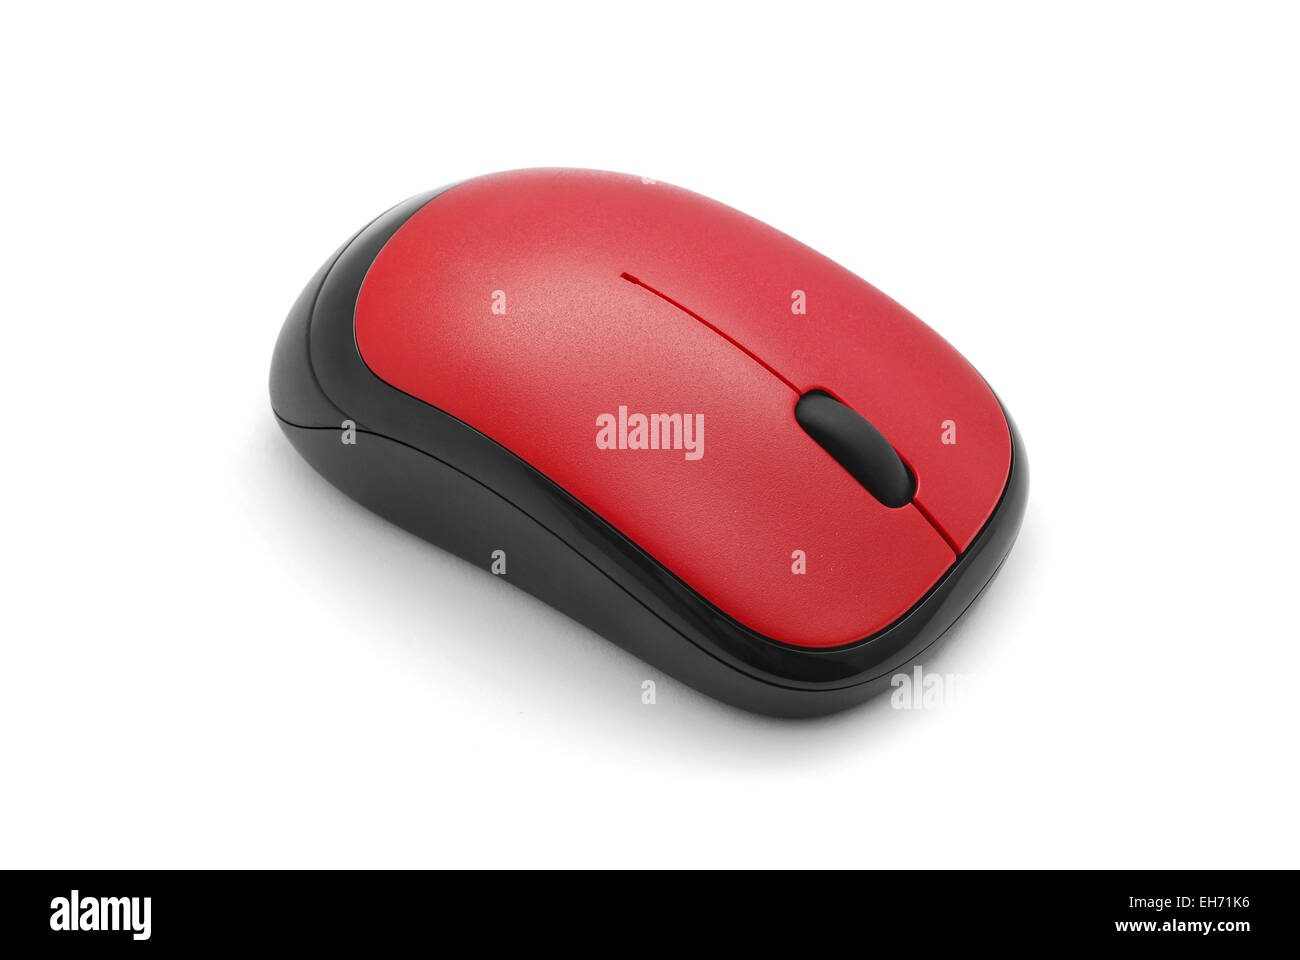 wireless computer mouse on white - Stock Image